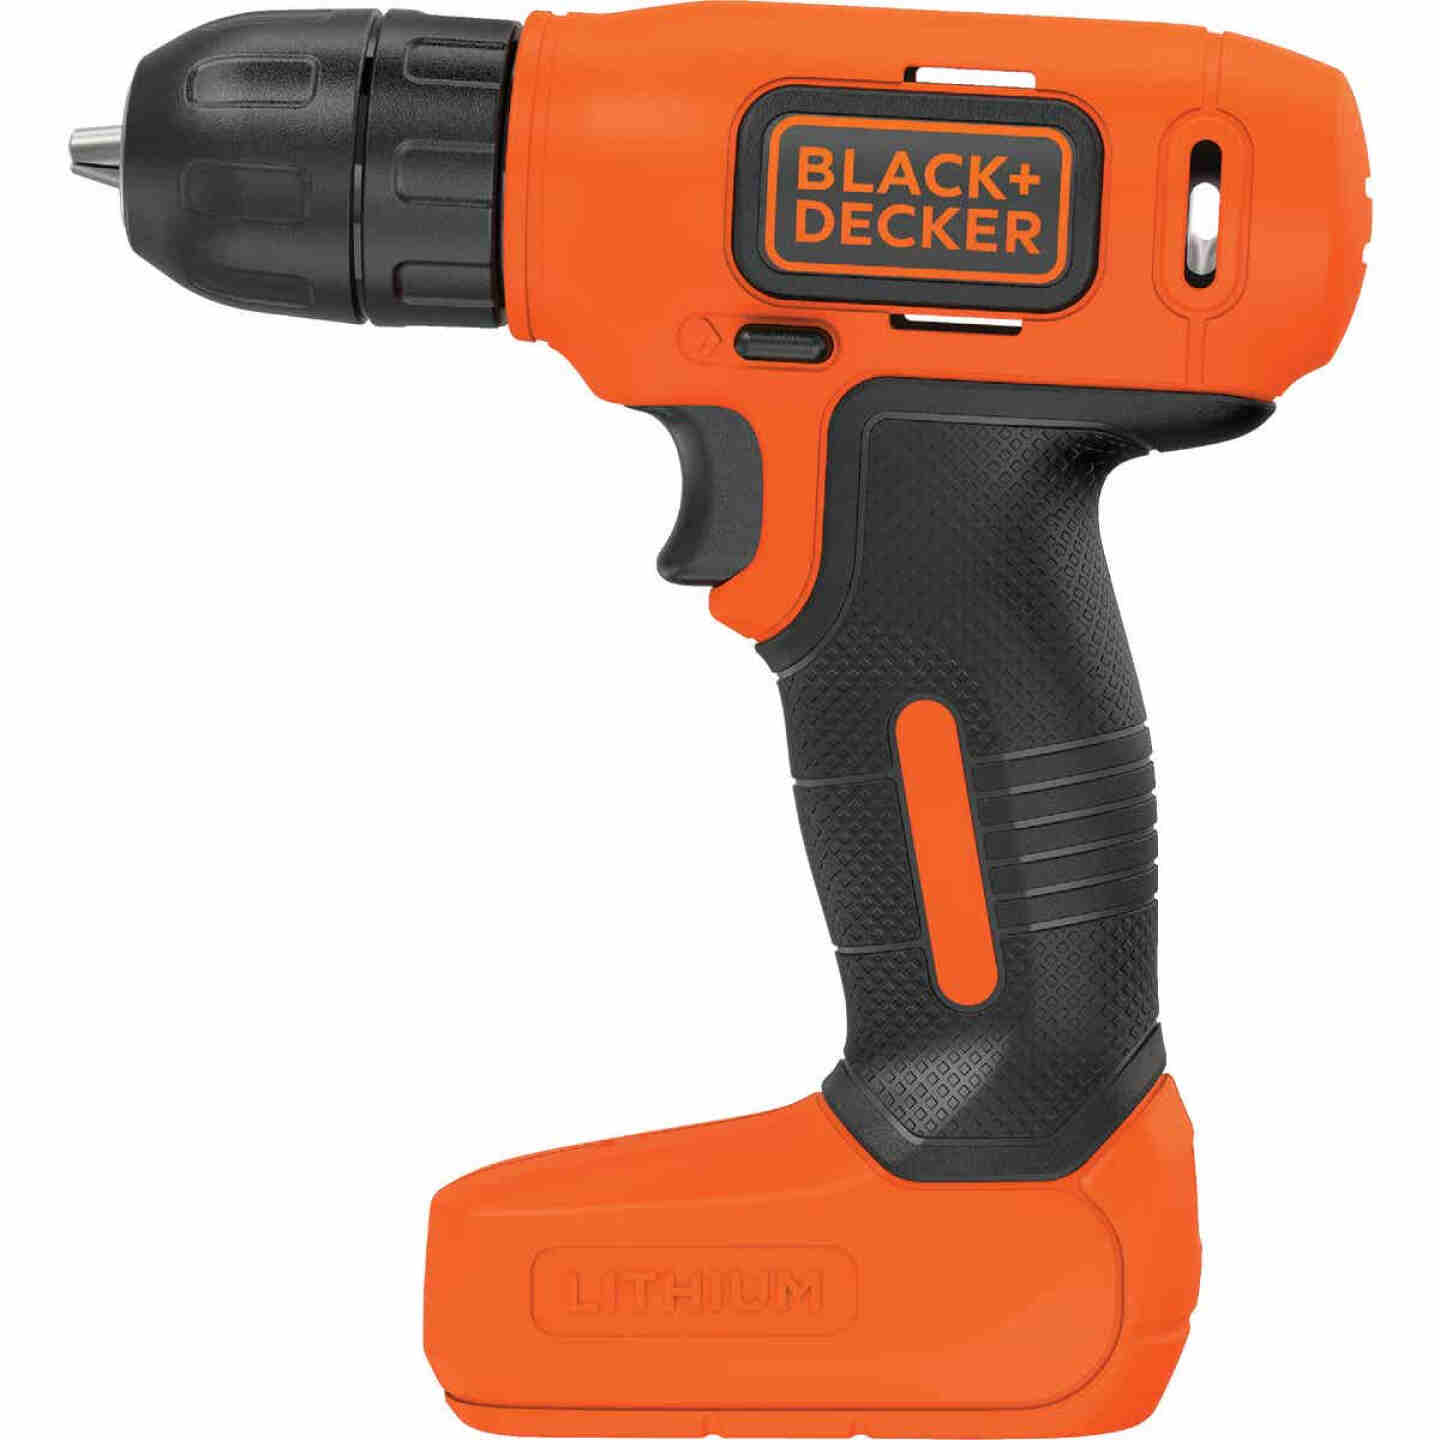 Black & Decker 8 Volt Lithium-Ion 3/8 In. Cordless Drill Kit Image 5